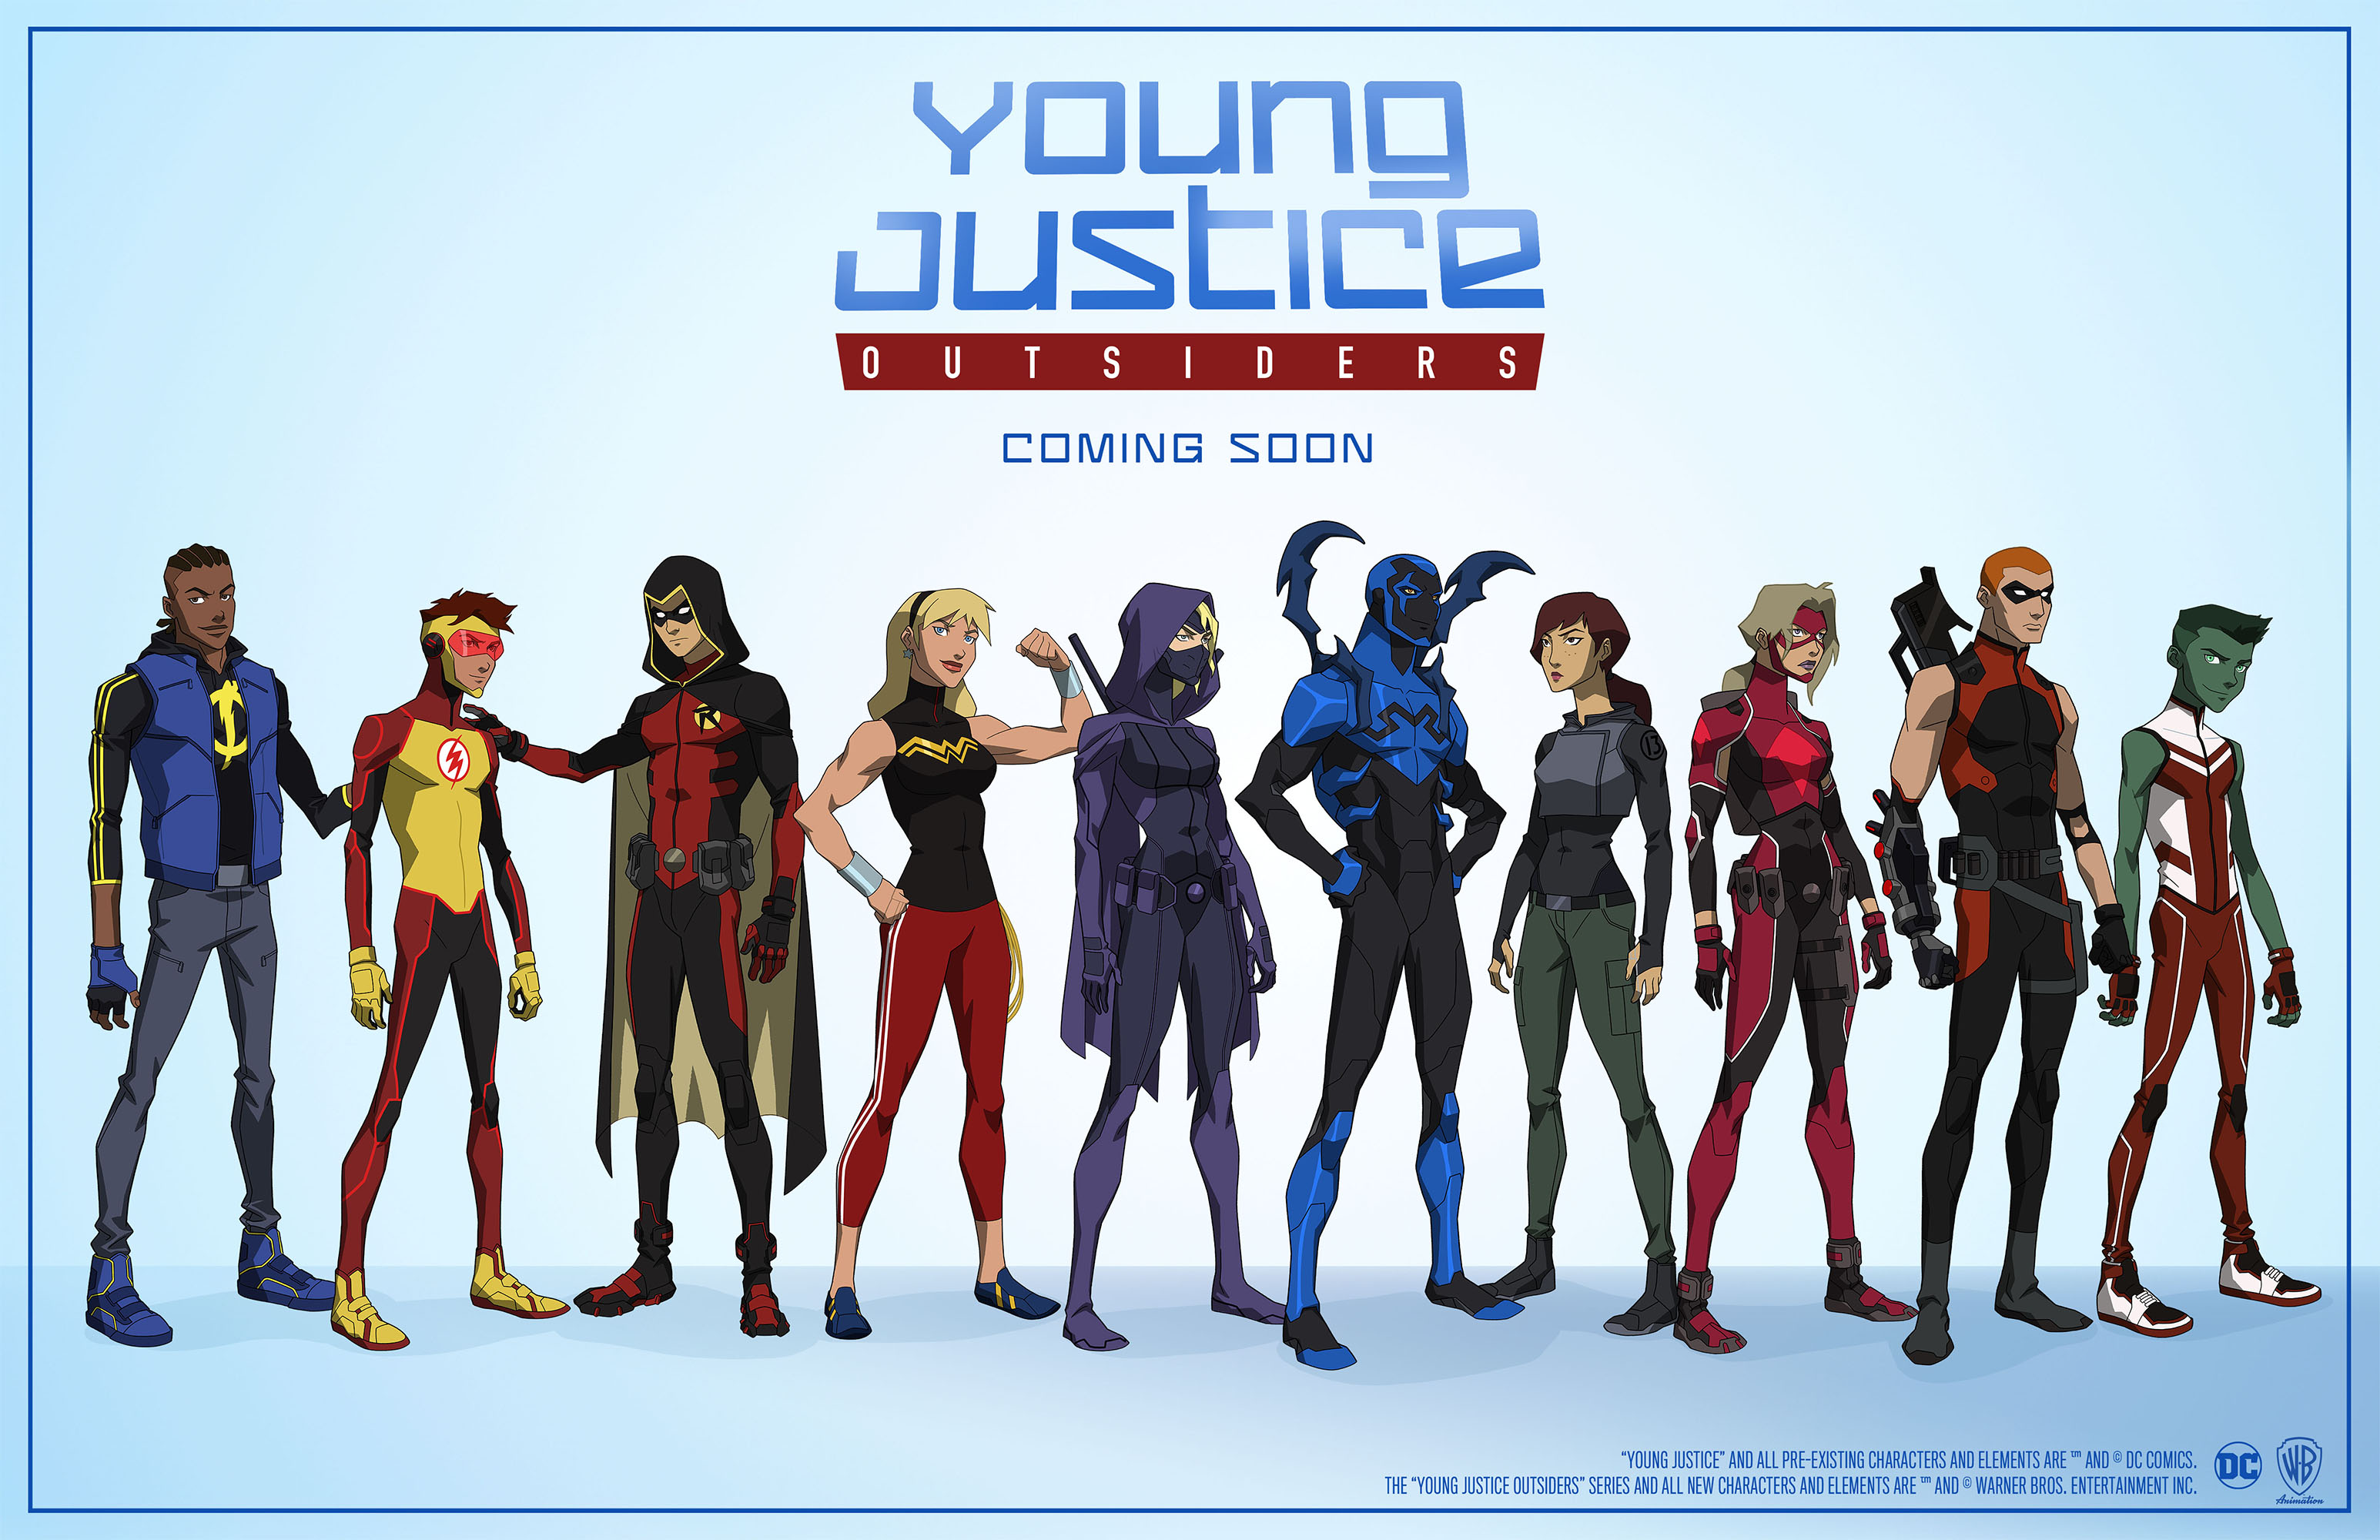 Young Justice: Outsiders reveals new characters, costumes